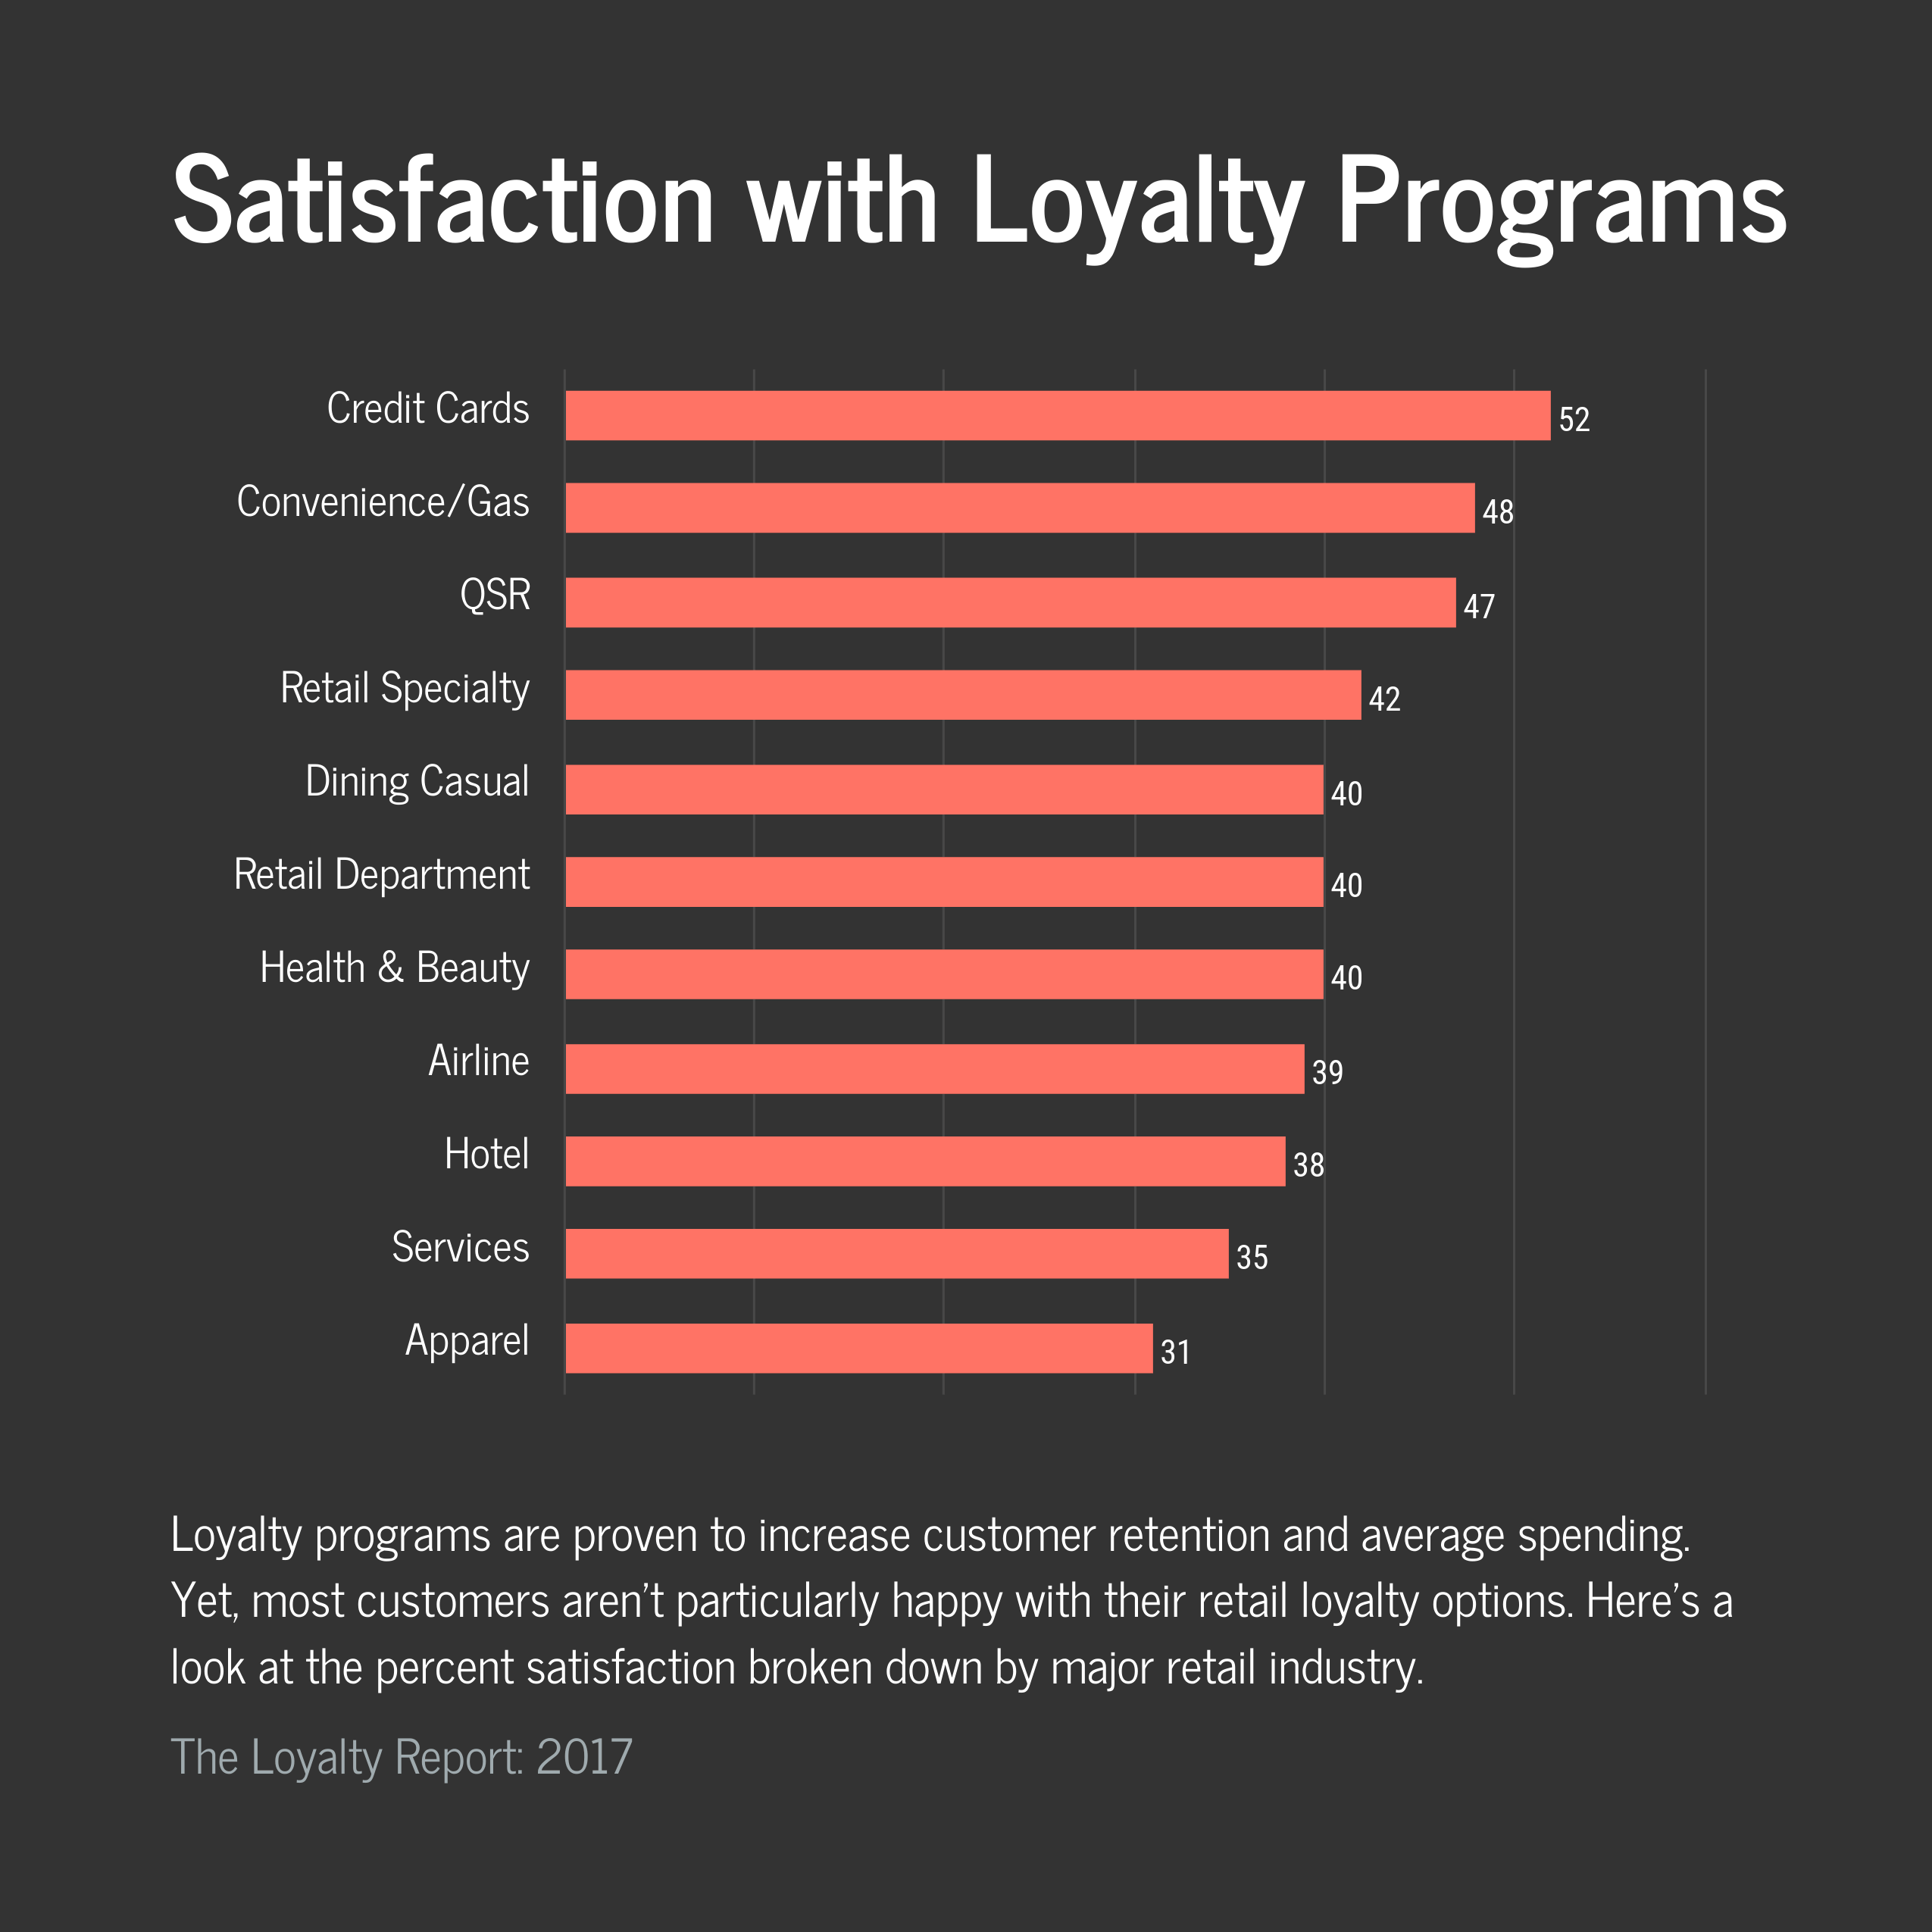 satisfaction with retail loyalty programs